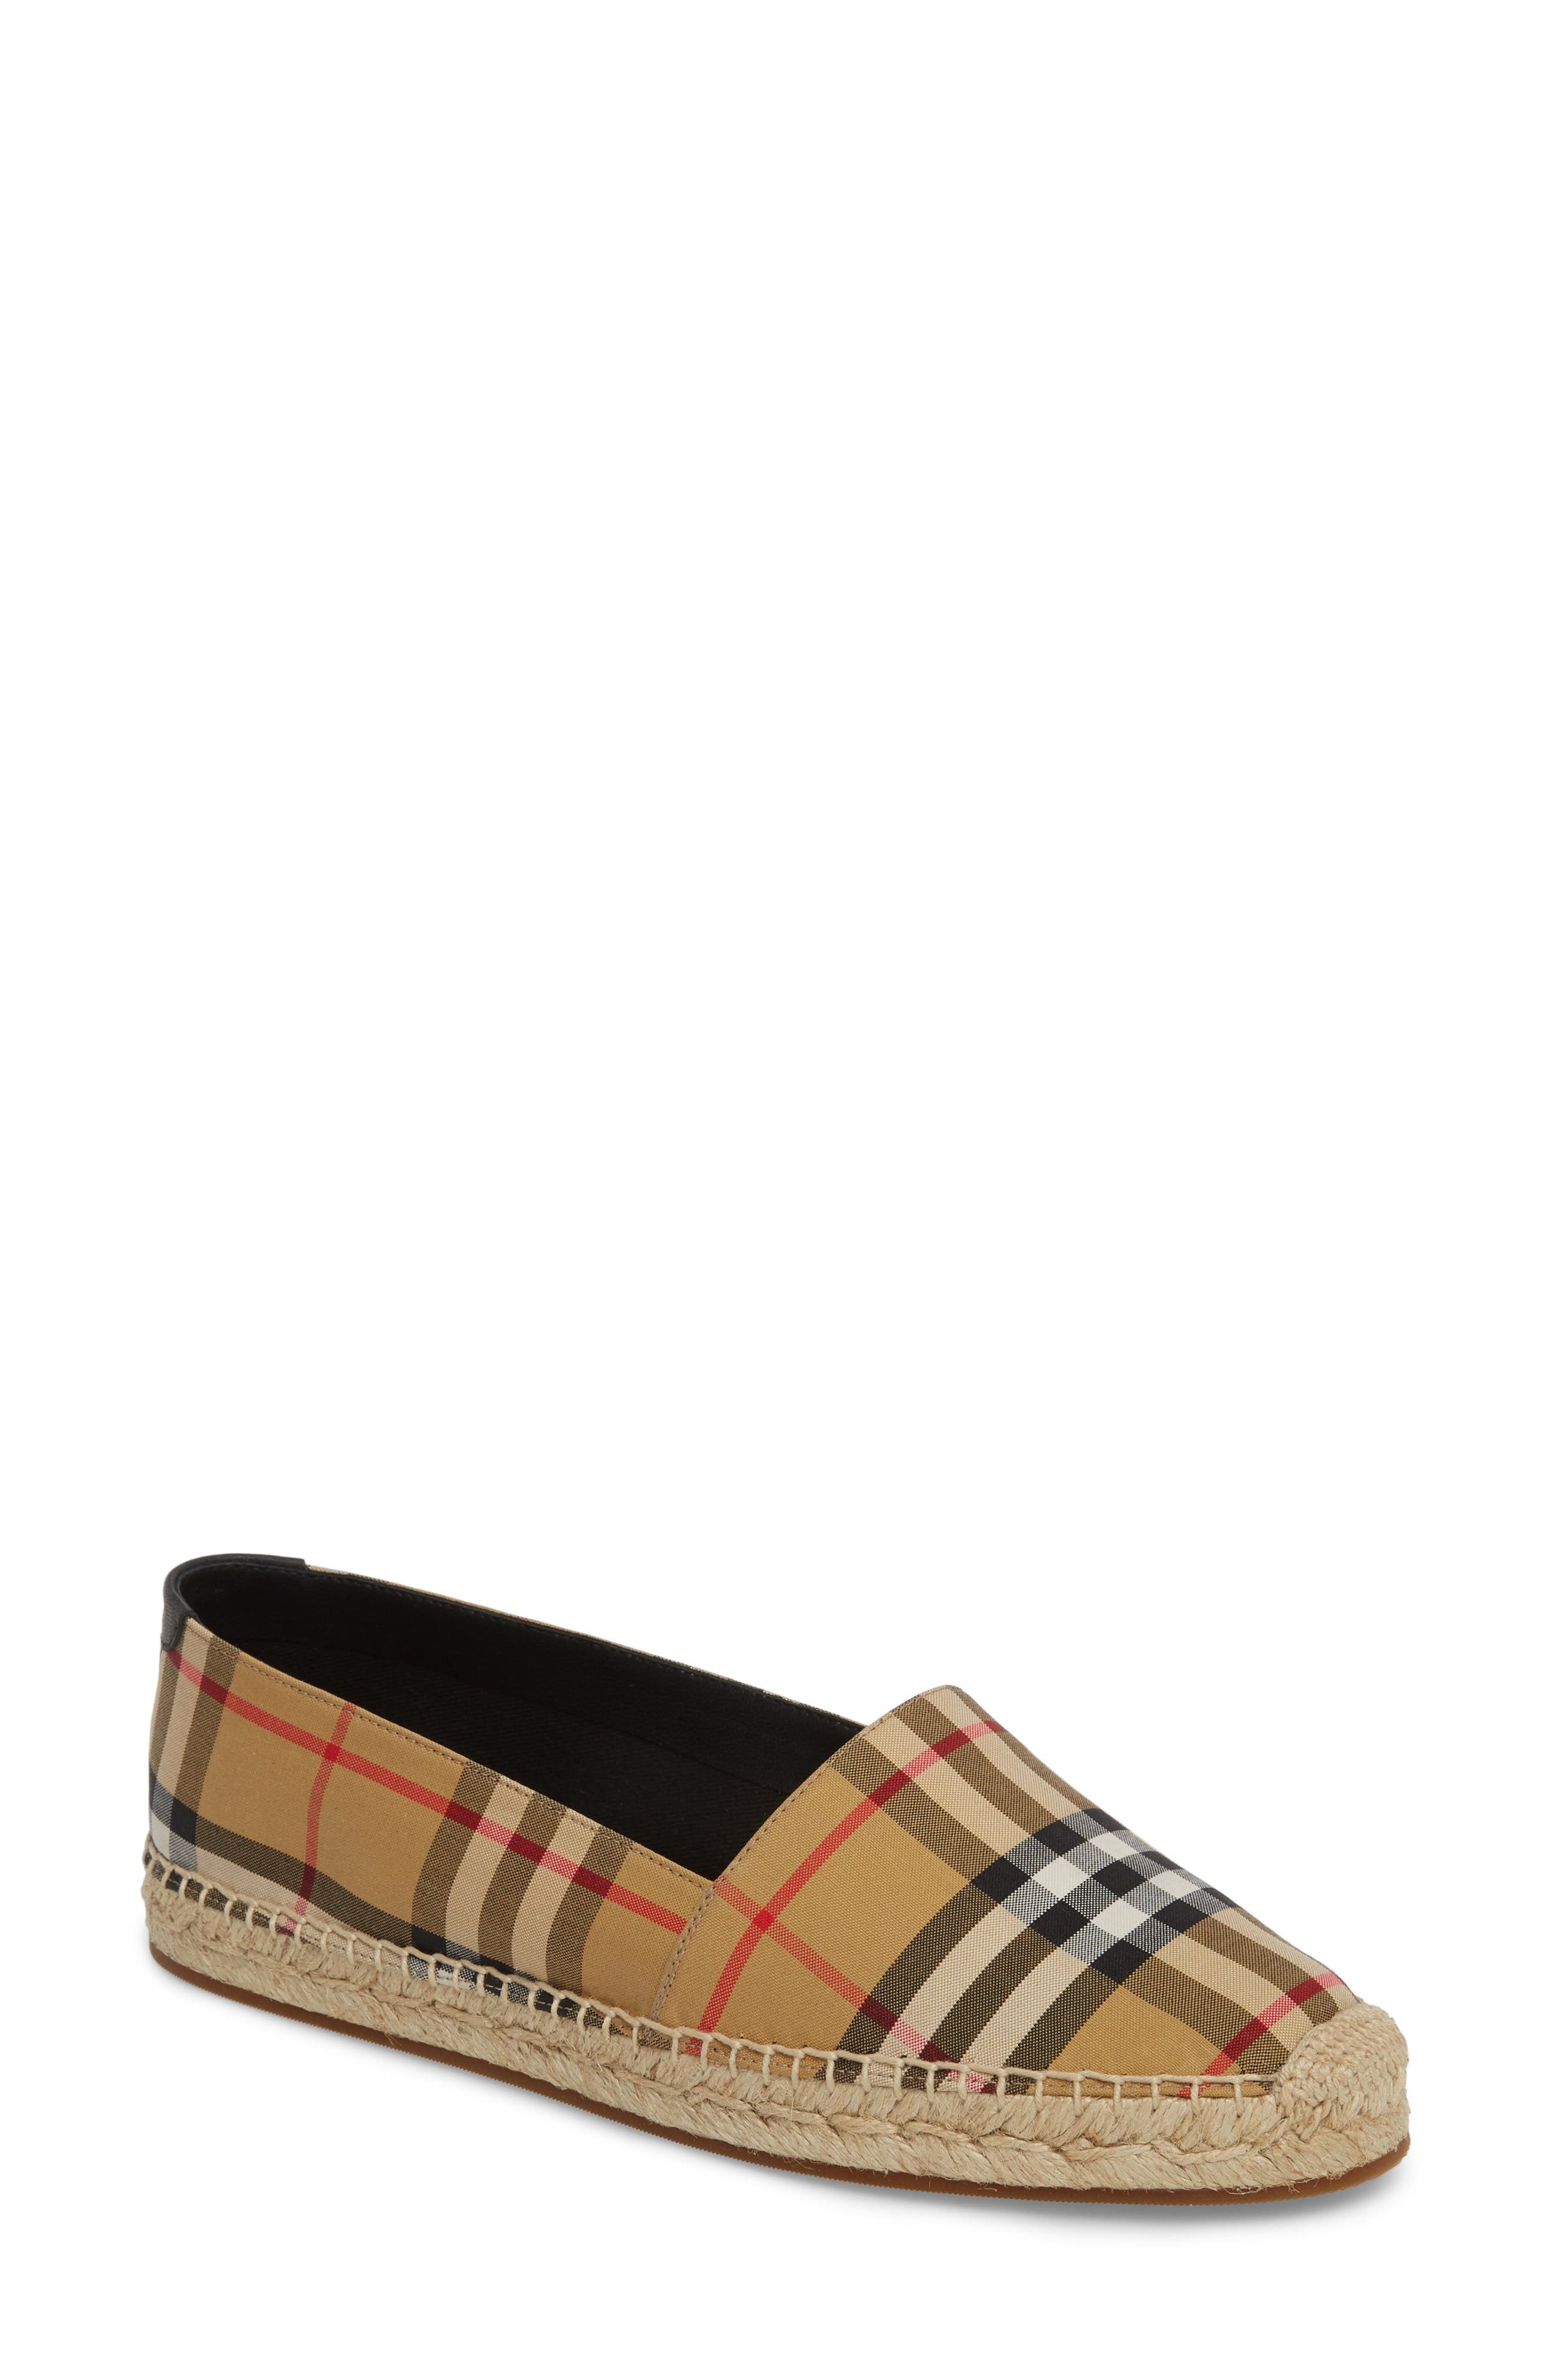 Hodgeson Check Espadrille Flat,                         Main,                         color, 251